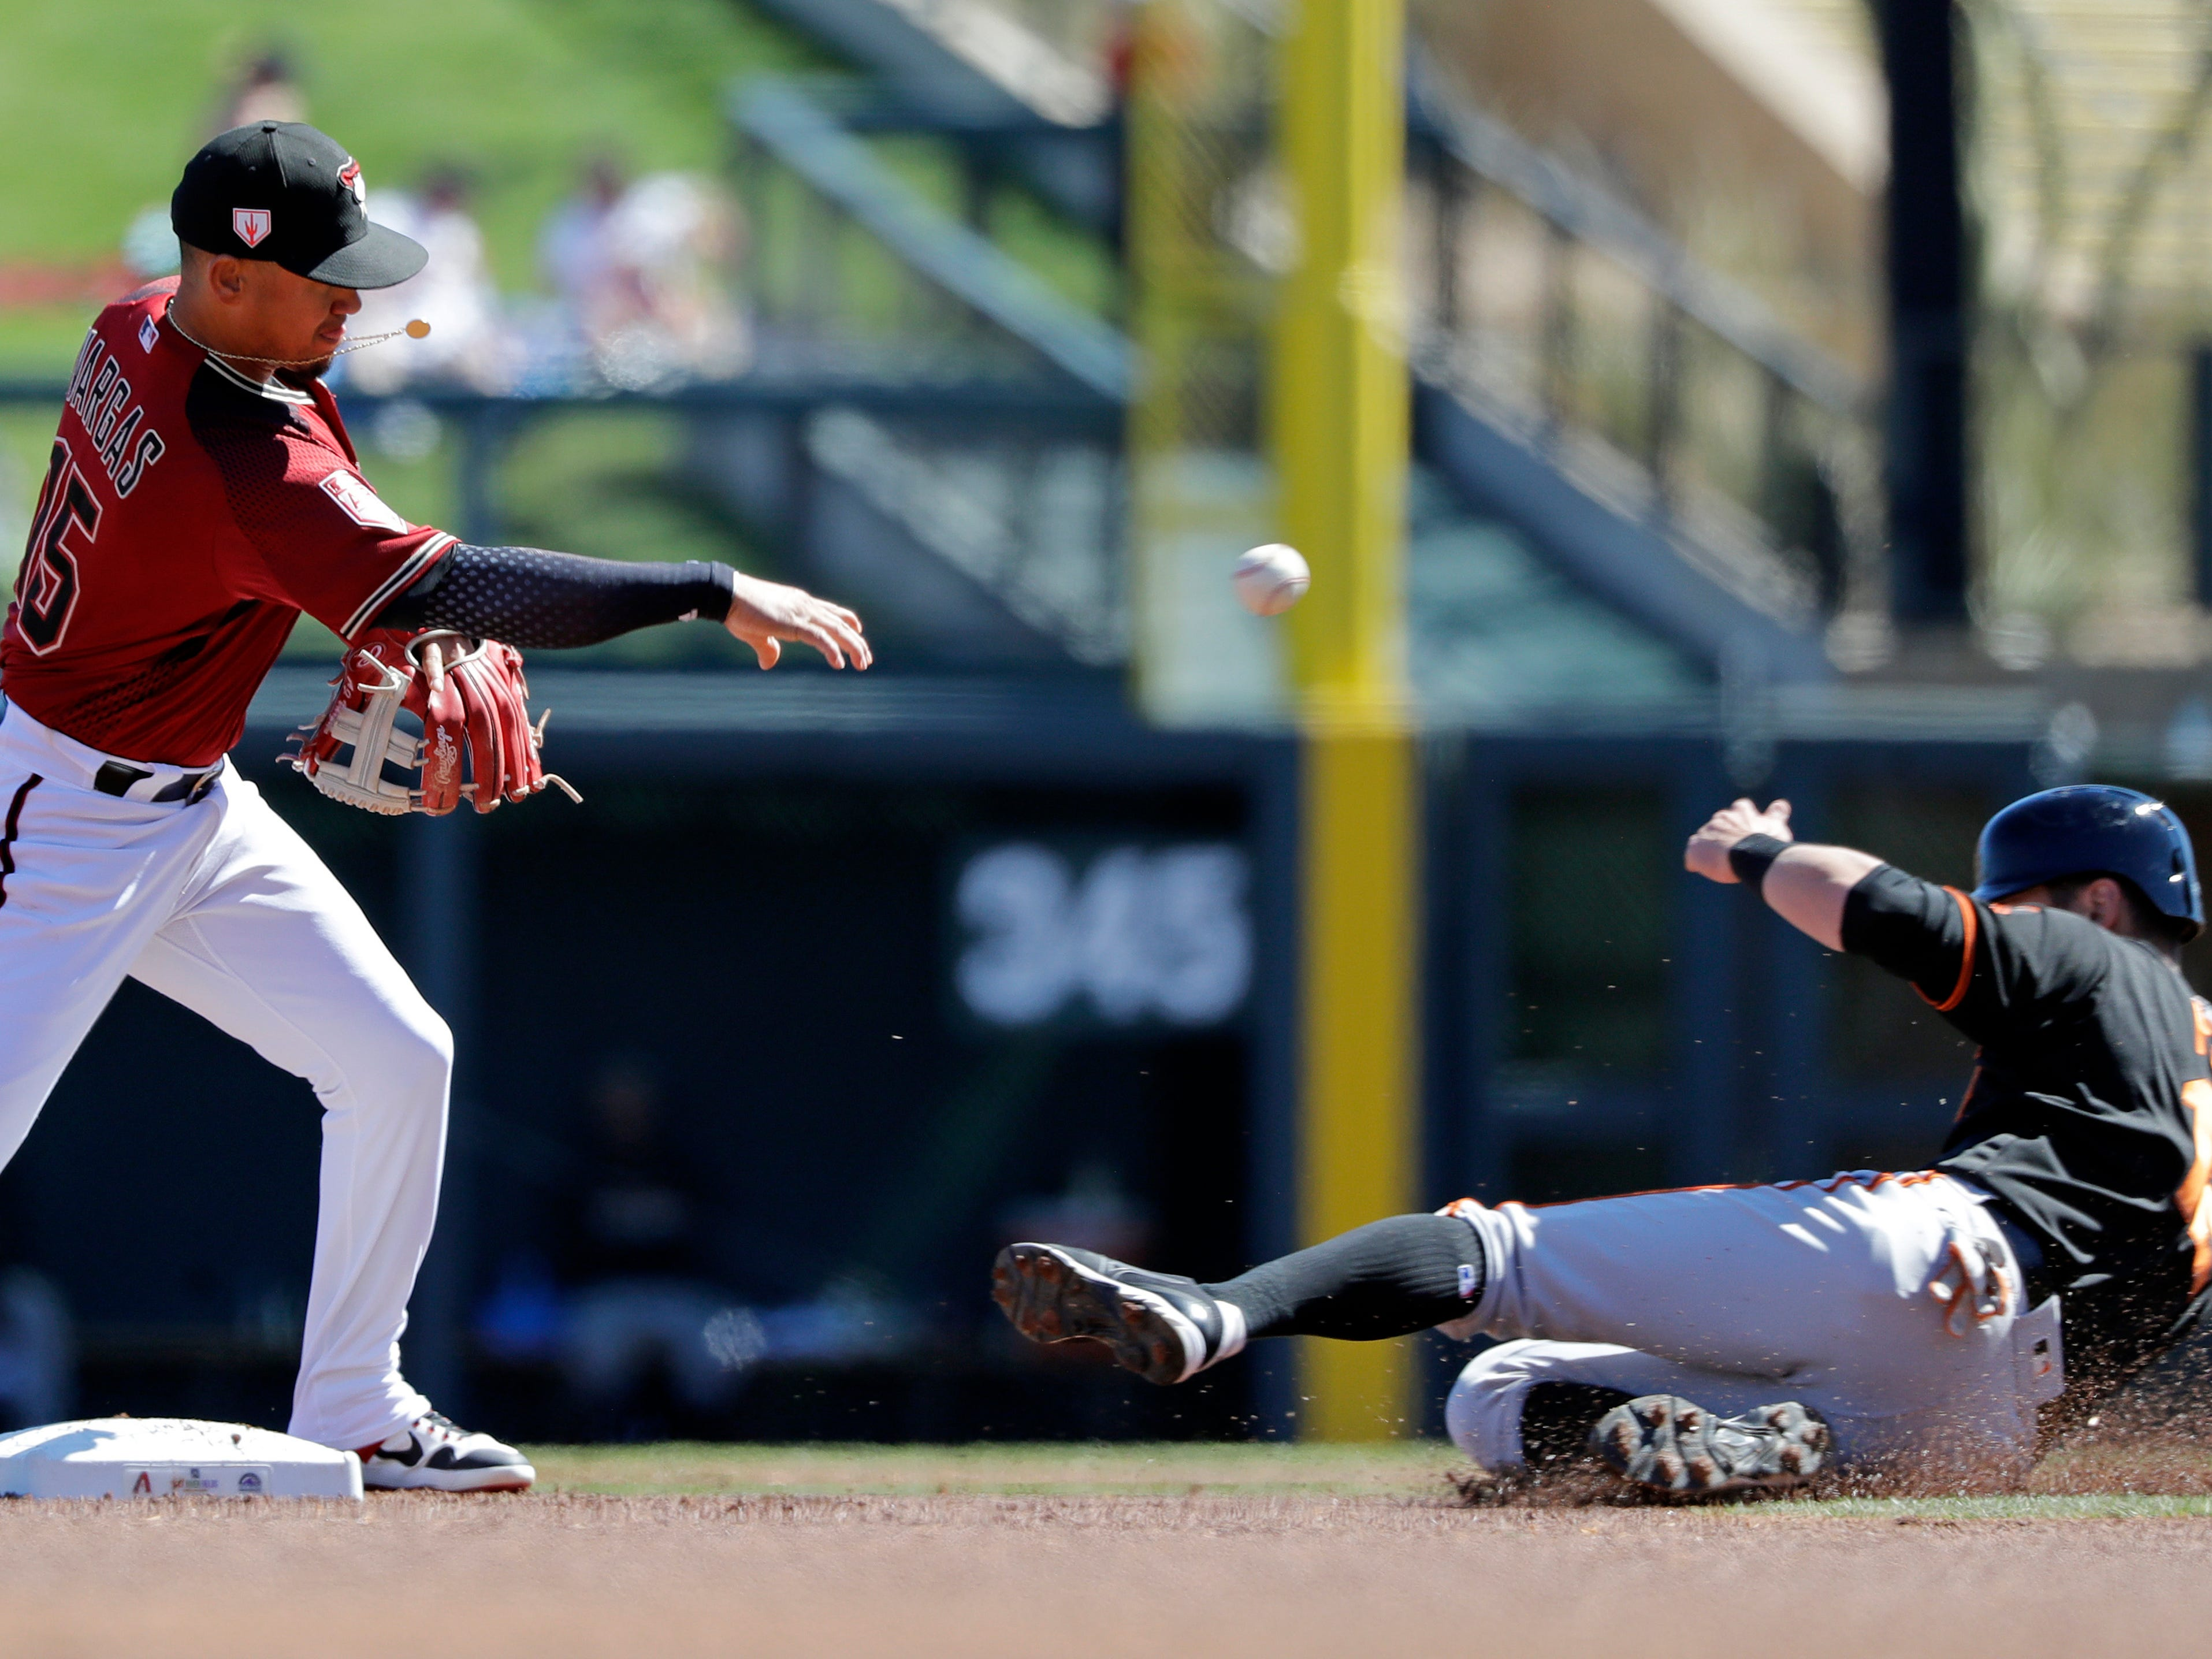 Arizona Diamondbacks second baseman Ildemaro Vargas, left, throws to first after forcing out San Francisco Giants' Joe Panik, right, at second in the first inning of a spring training baseball game Thursday, March 14, 2019, in Scottsdale, Ariz. Giants' Buster Posey was out at first base on the double play.